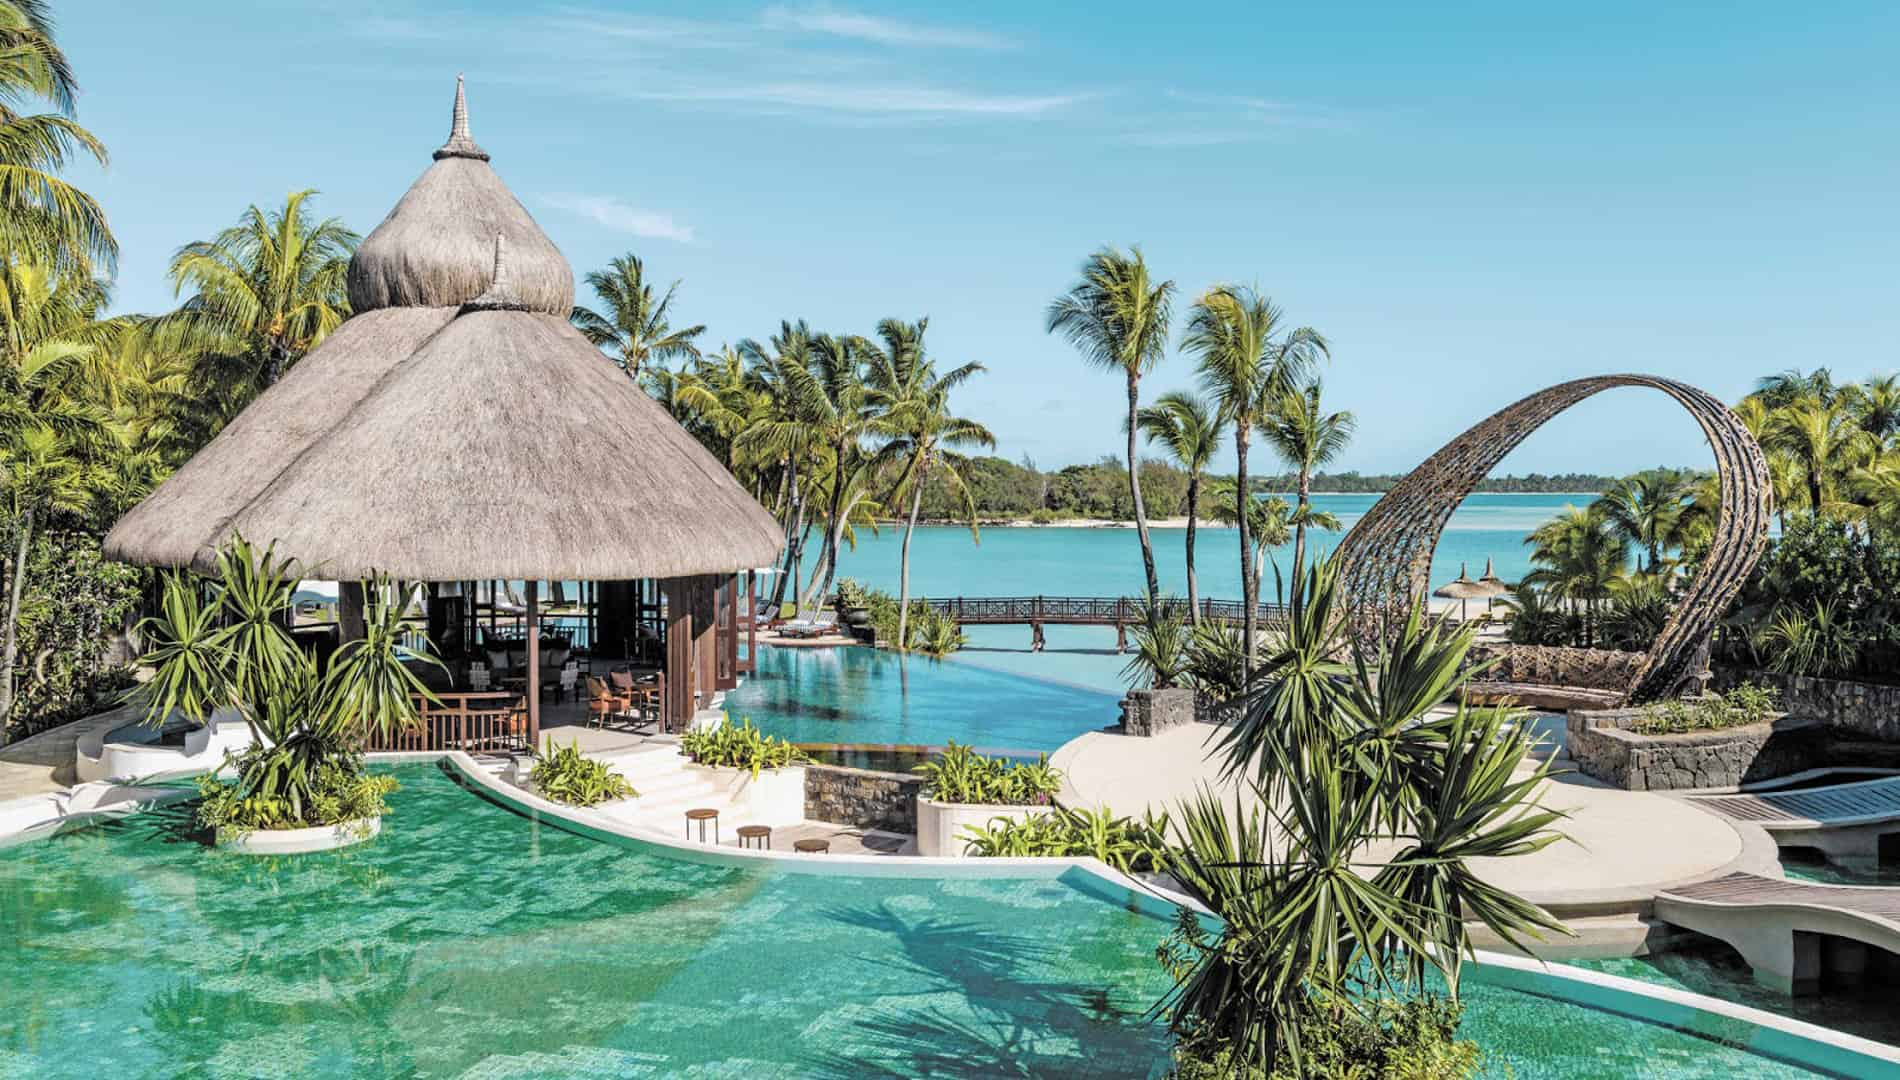 Mauritius Is One Of The Honeymoon Destinations In The World For Couples